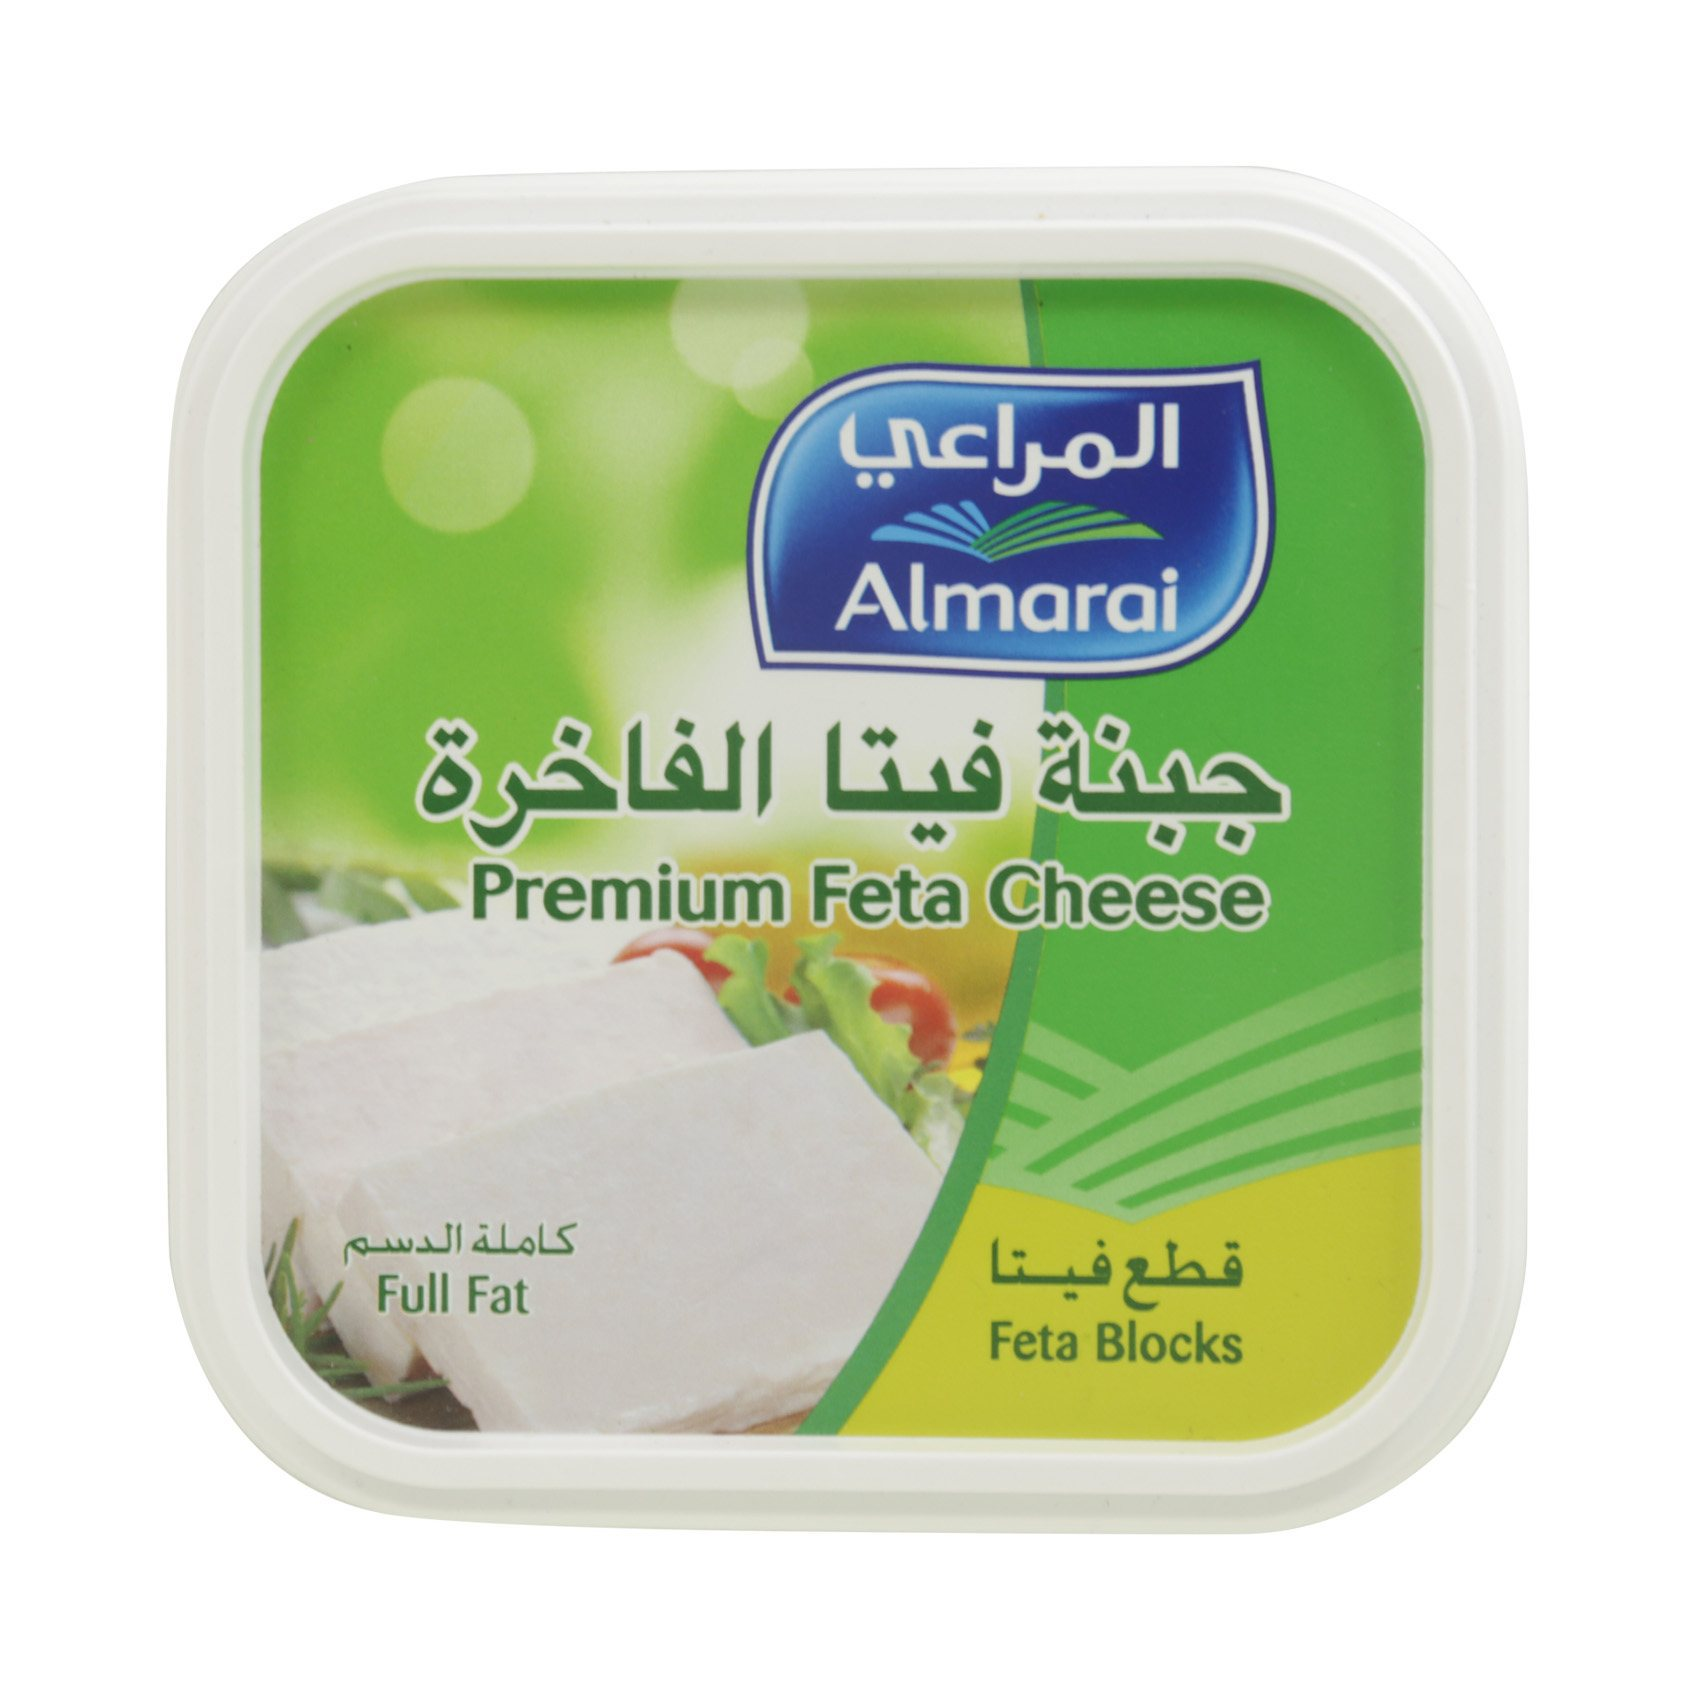 AL MARAI FETA CHEESE BLOCK 400G